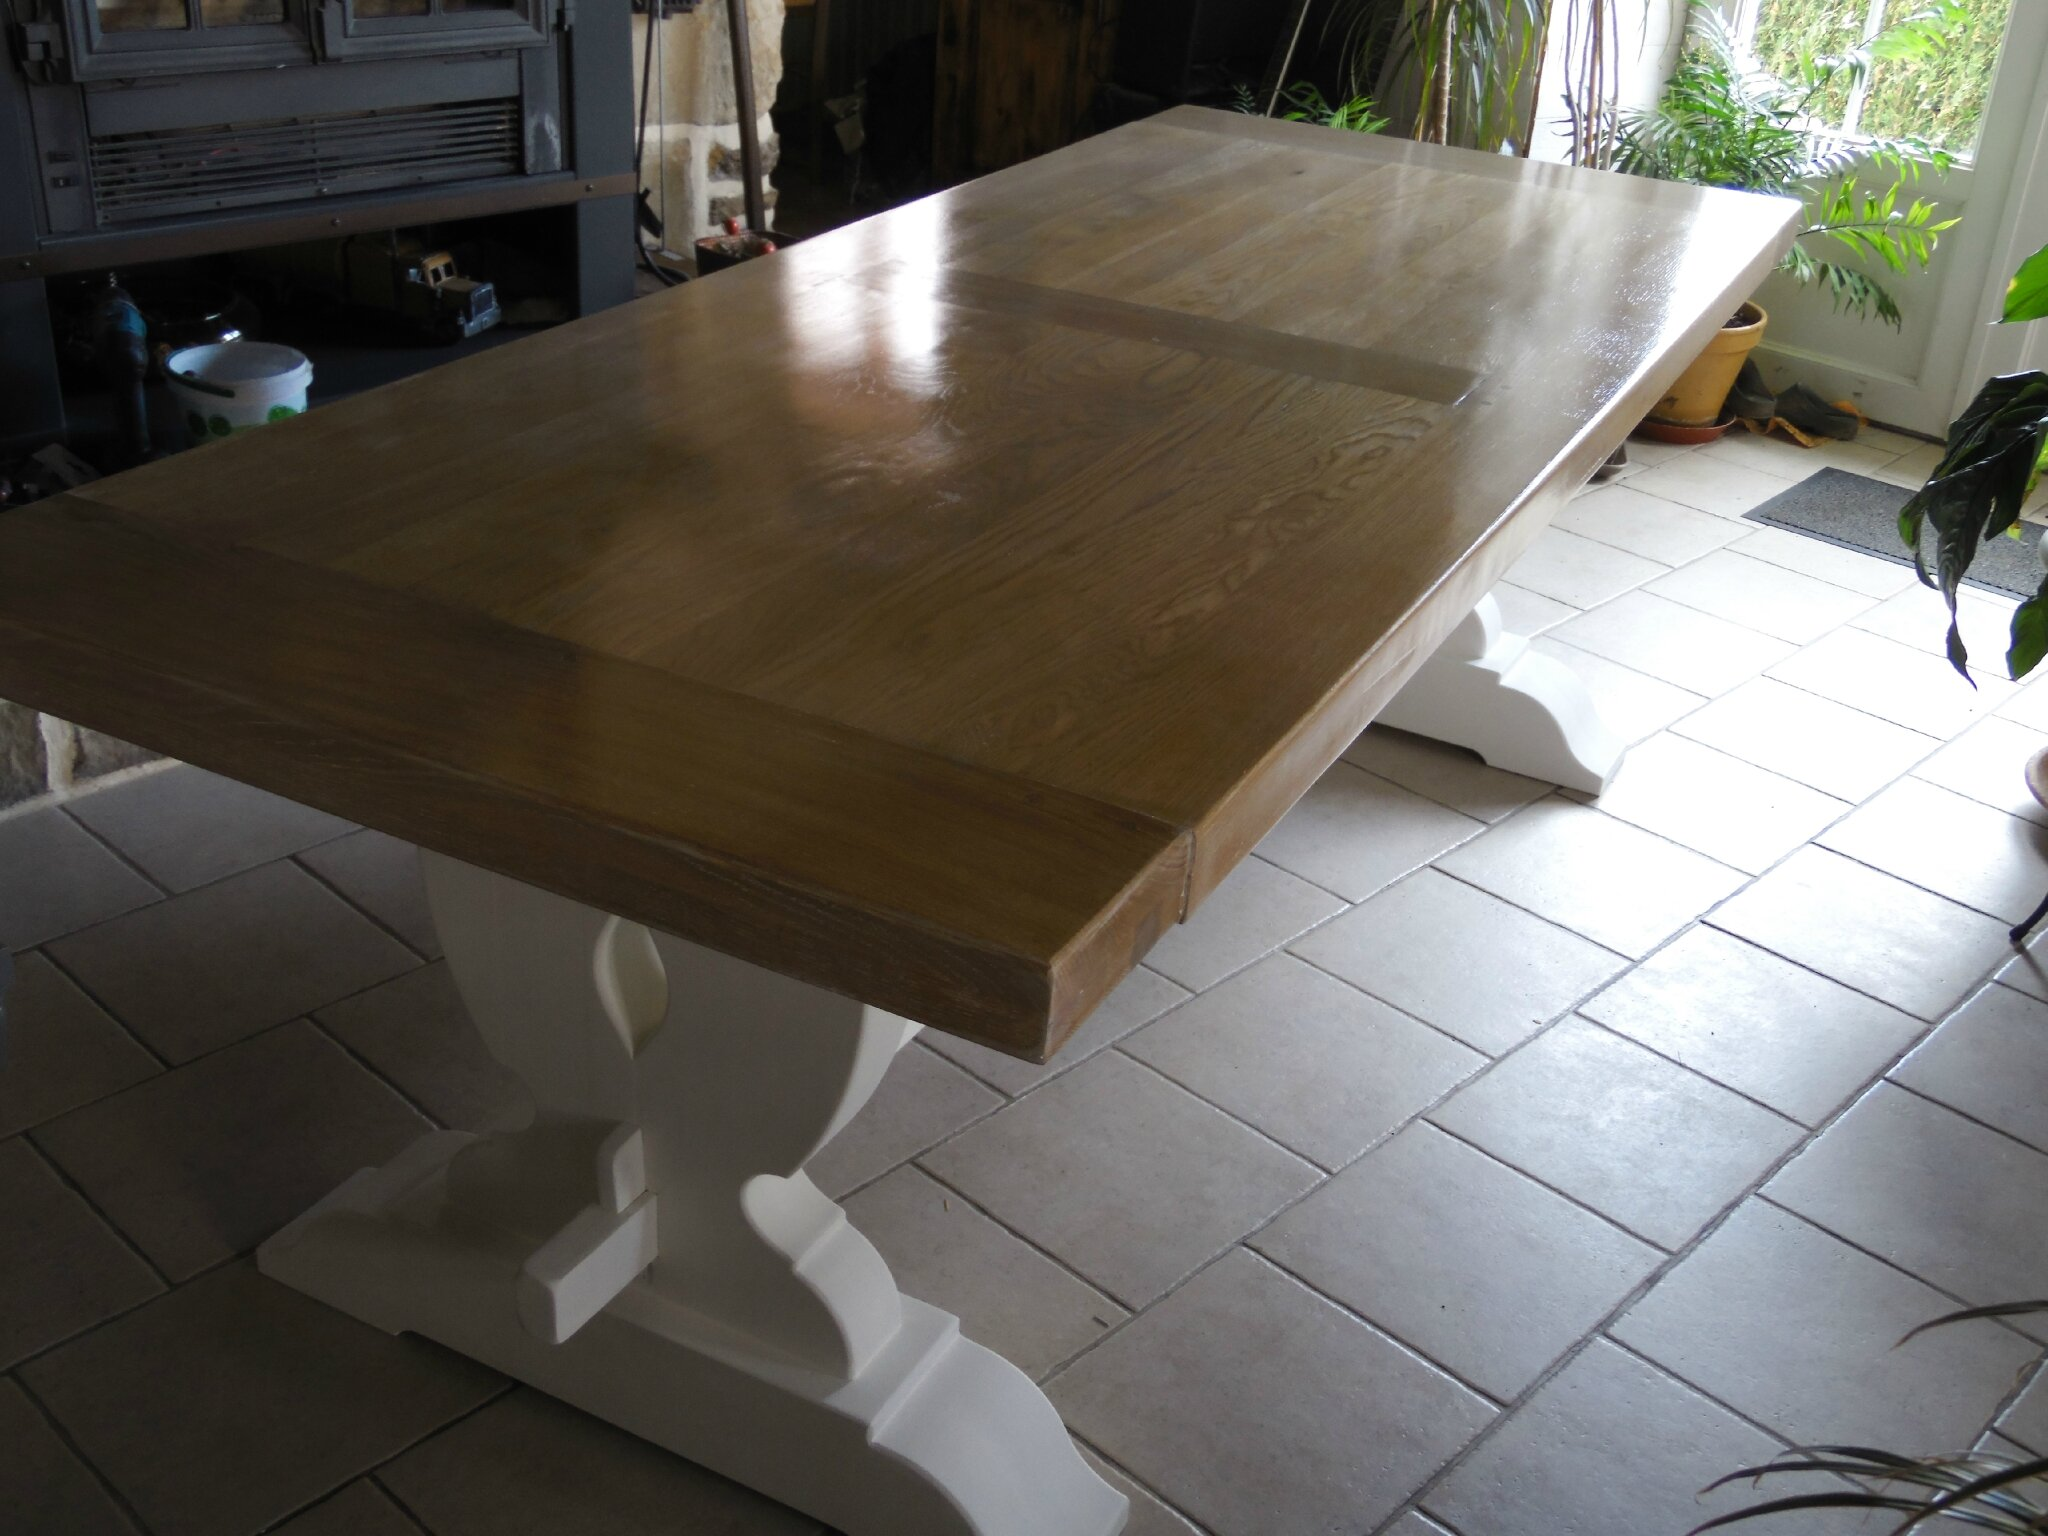 Table monastere relookee 10 ancienne table de ferme for Table salle a manger ancienne